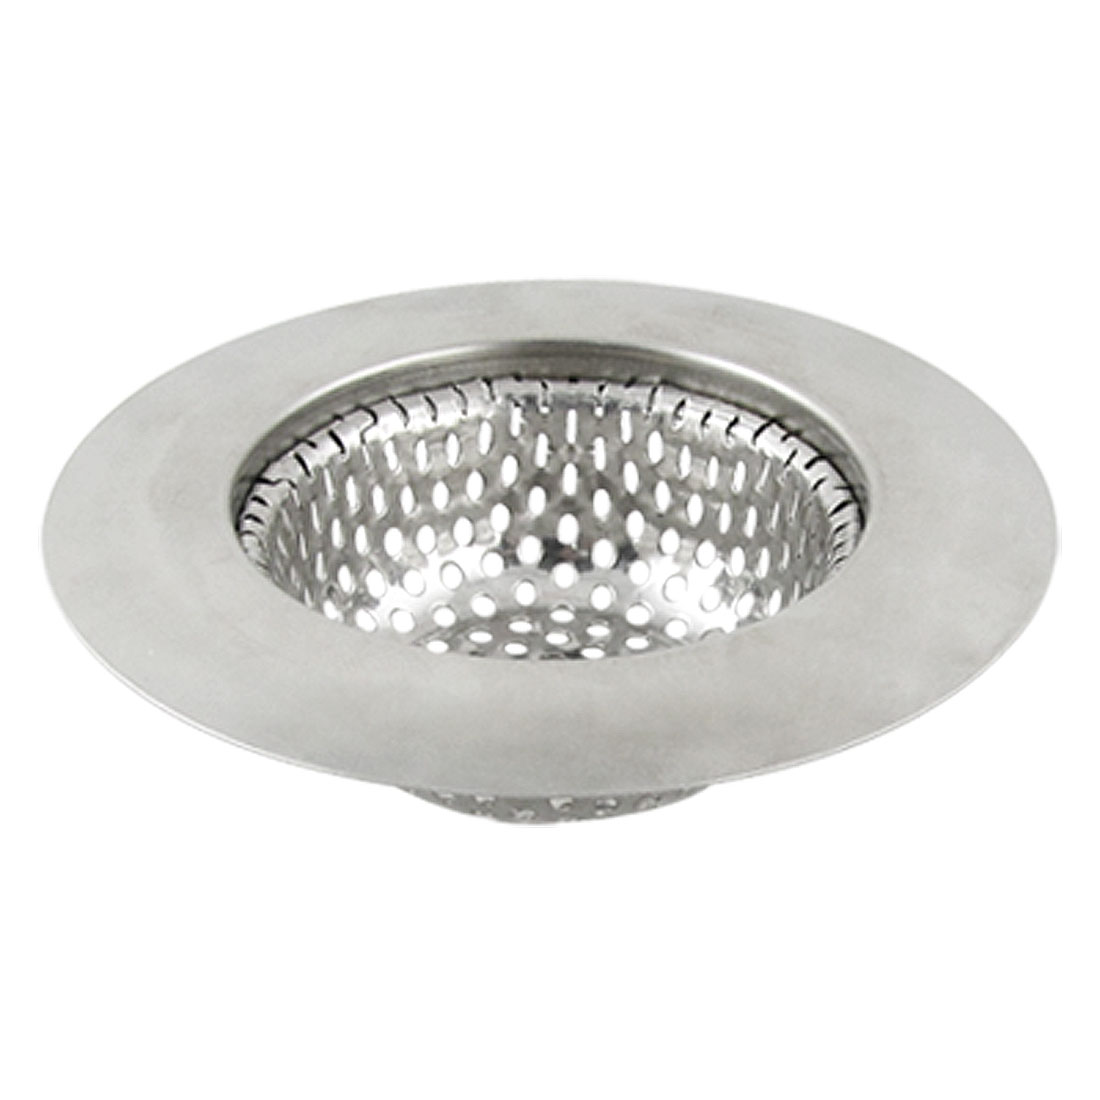 Kitchen Mesh Hole Design Stainless Steel Sink Strainer